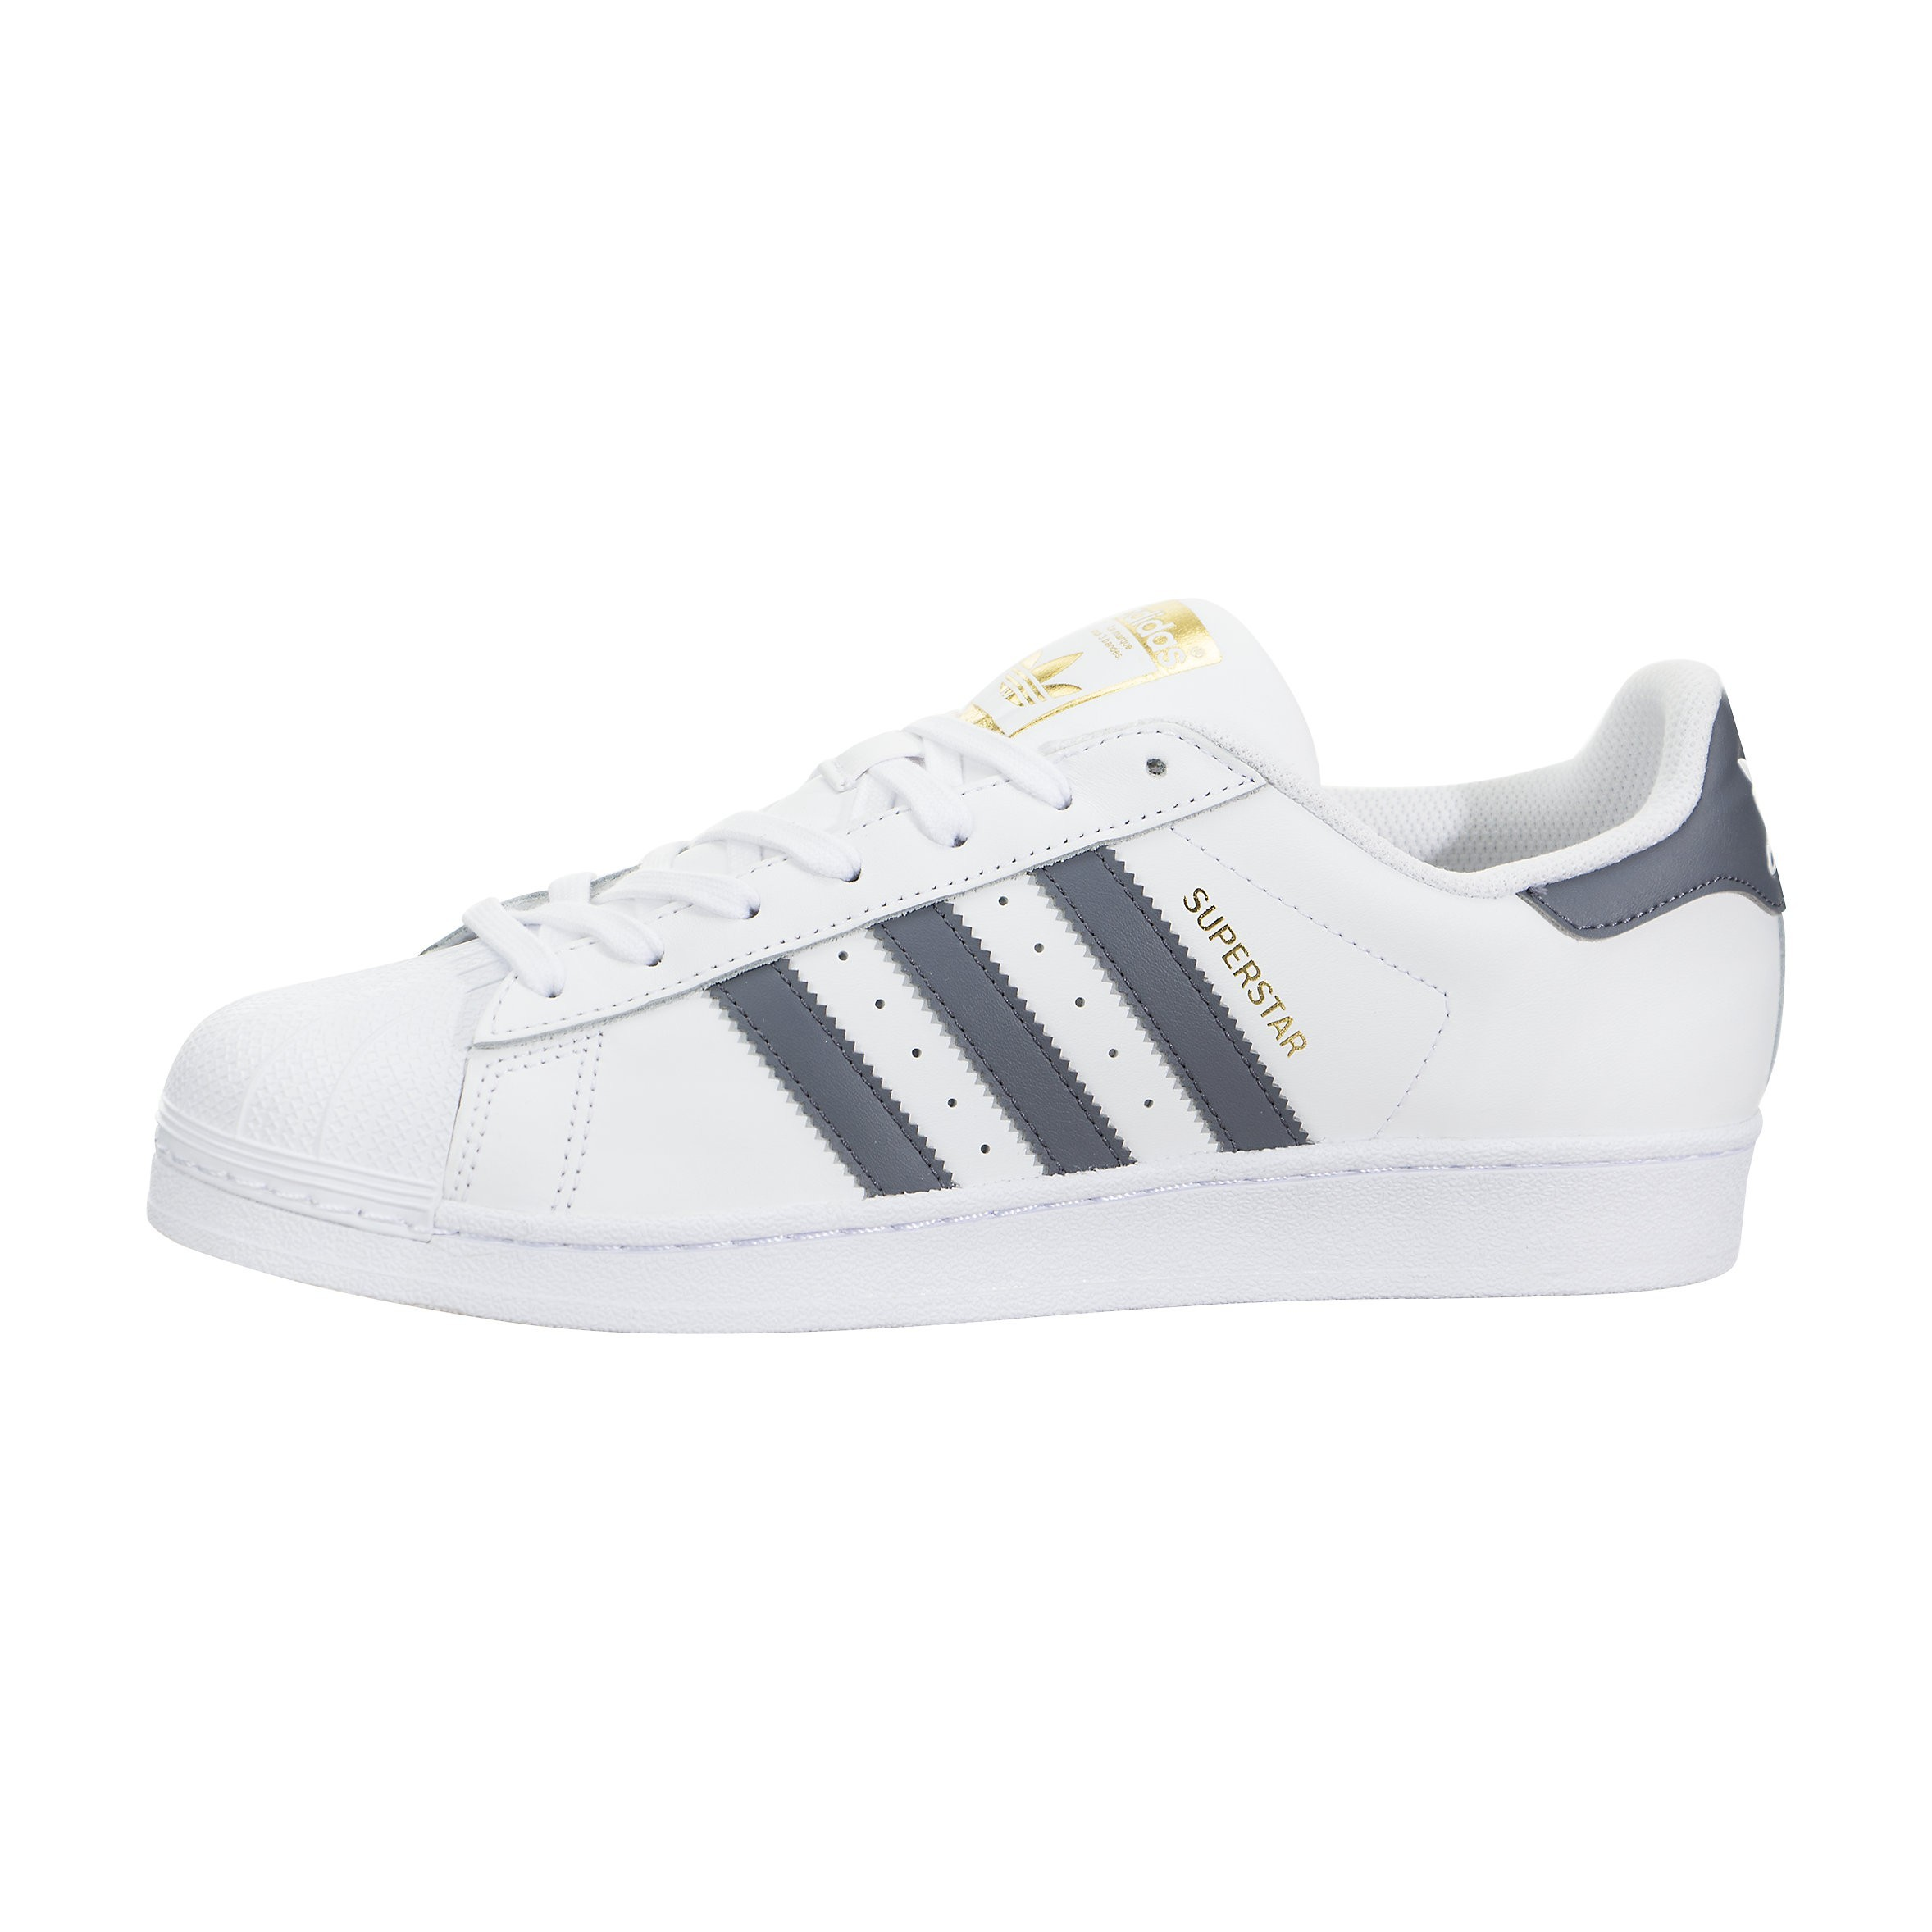 Hombre Adidas Originals Superstar Foundation Blancas/Grises BY3714